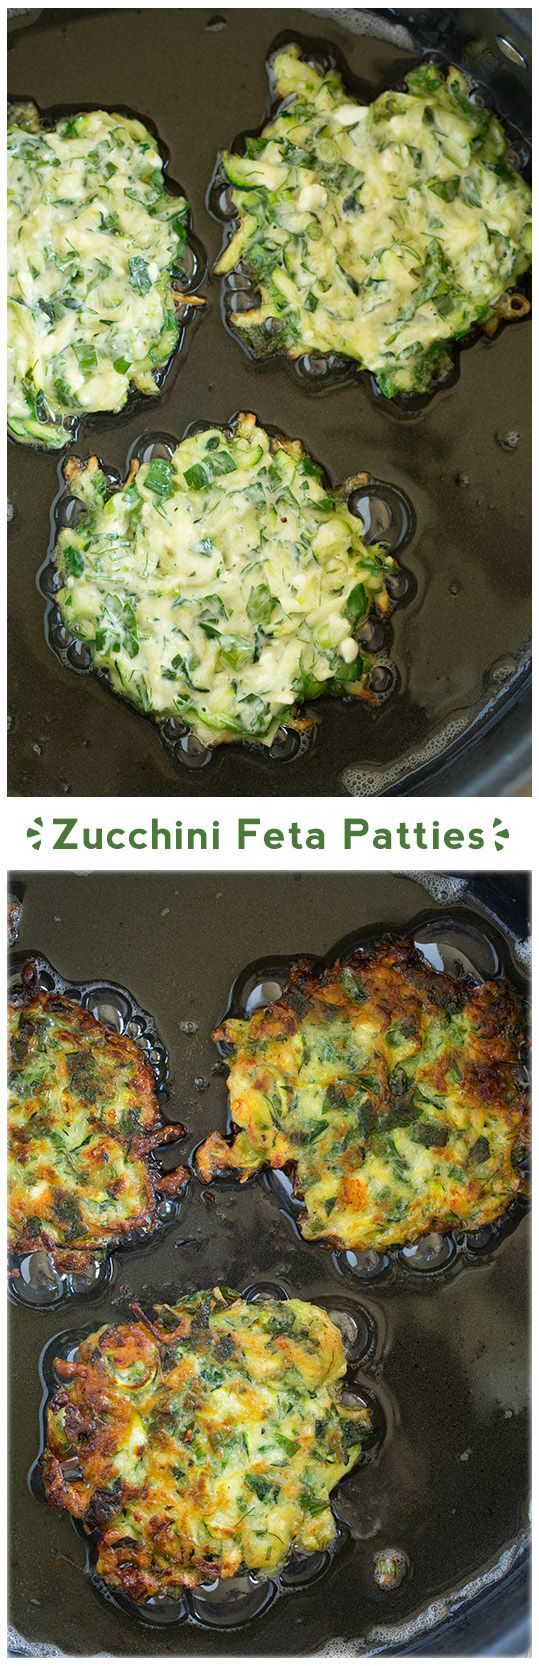 Zucchini Patties with Feta - these are so delicious! Love them hot out of the skillet while they are crisp. So good!